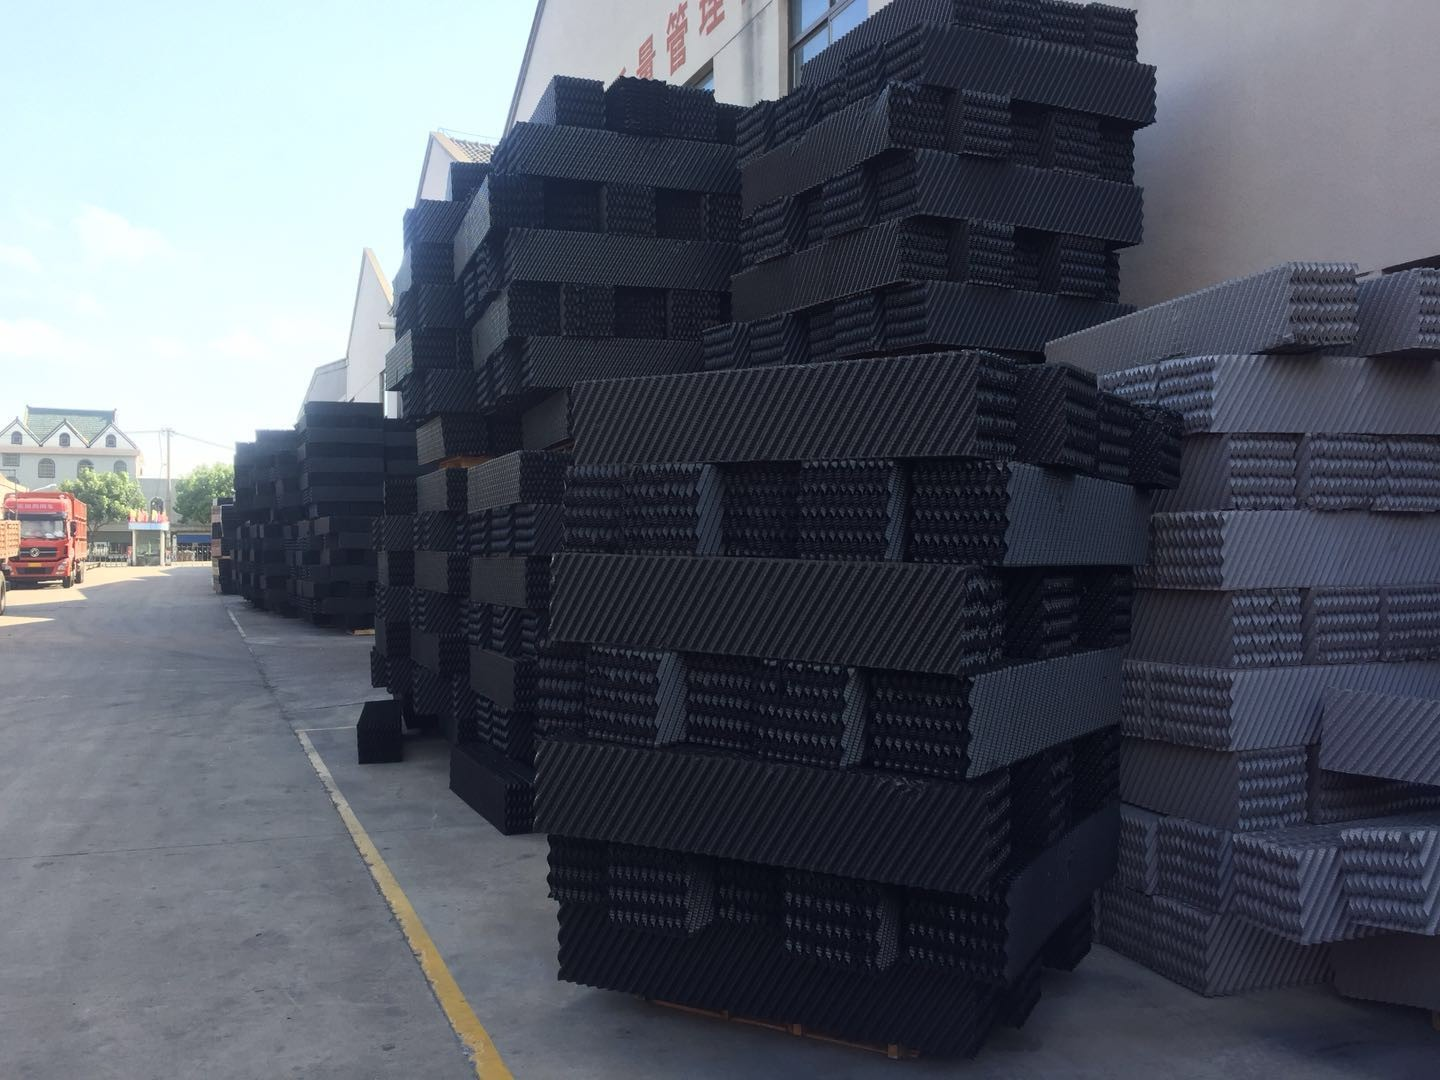 Best Price Films PVC Fill Packing For Cooling Tower Manufacturers, Best Price Films PVC Fill Packing For Cooling Tower Factory, Supply Best Price Films PVC Fill Packing For Cooling Tower